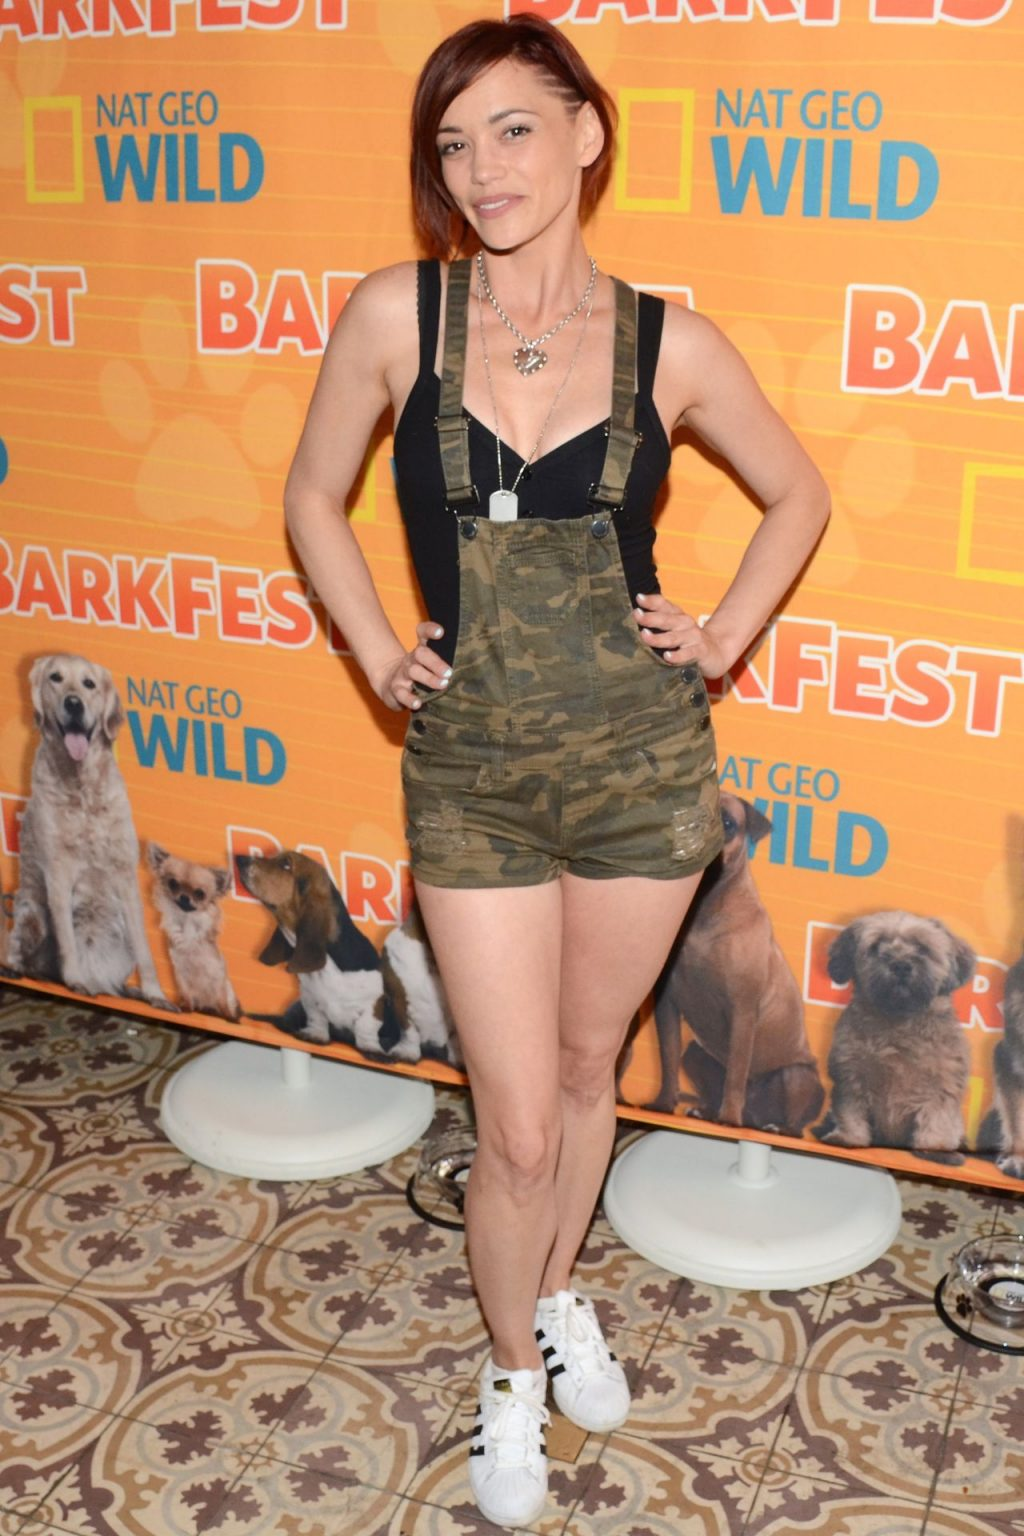 Jessica Sutta Looks Sexy at the Barkfest (4 Photos)